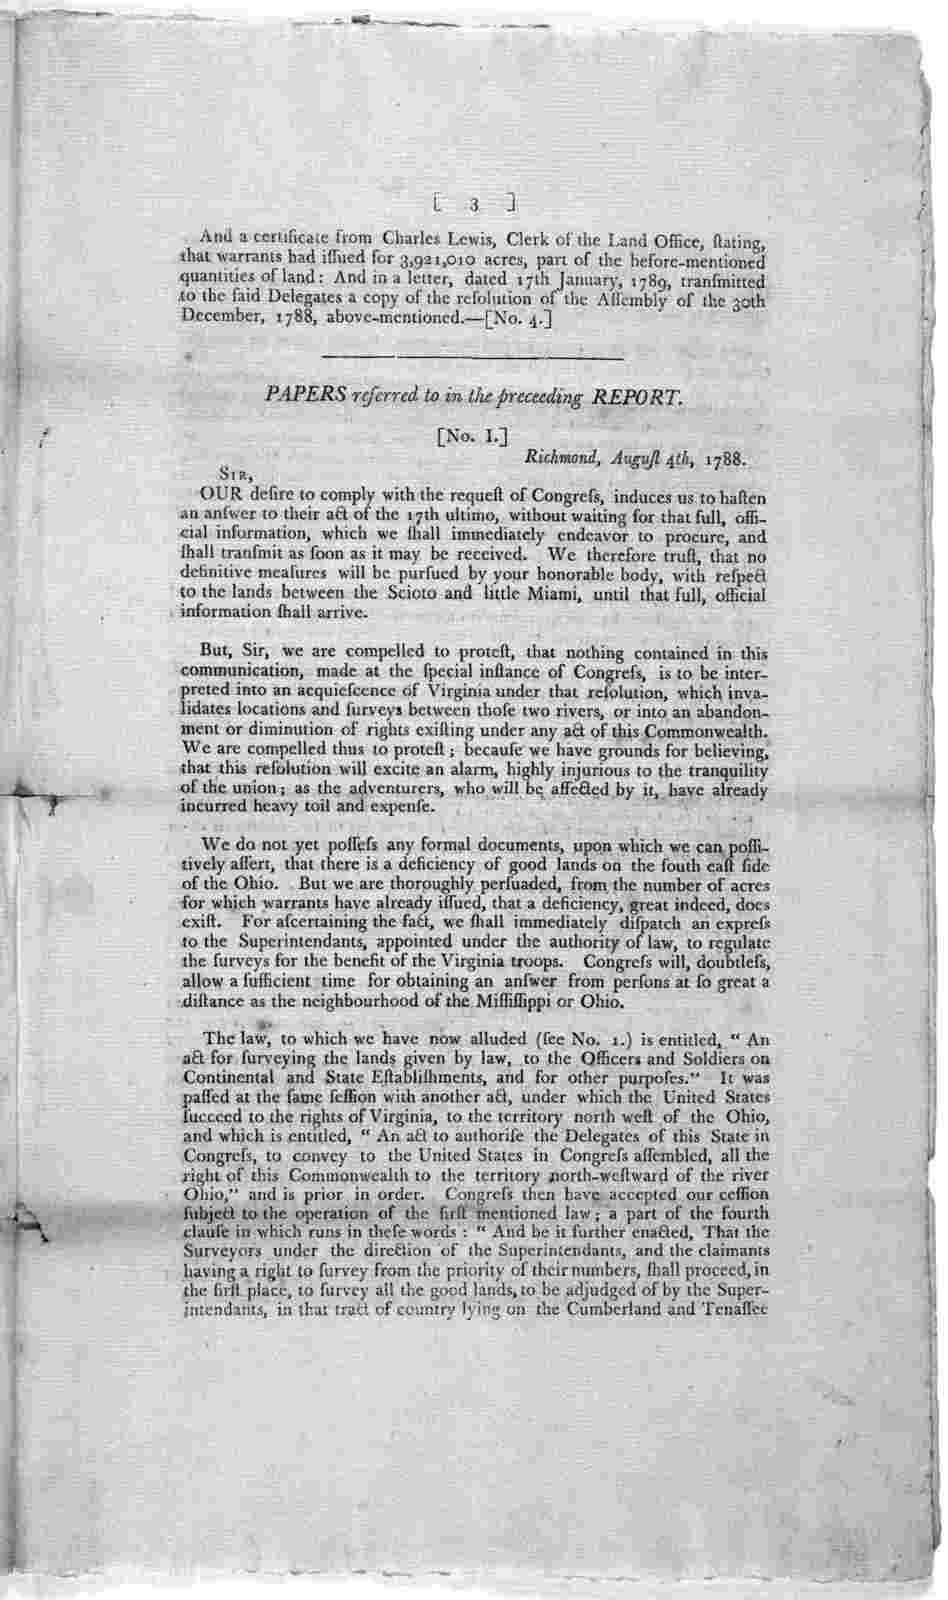 ... Committee, appointed to examine into the measures taken by Congress and the State of Virginia, respecting the lands reserved for the use of the officers and soldiers of the said state, on Continental and state establishments, in the cession